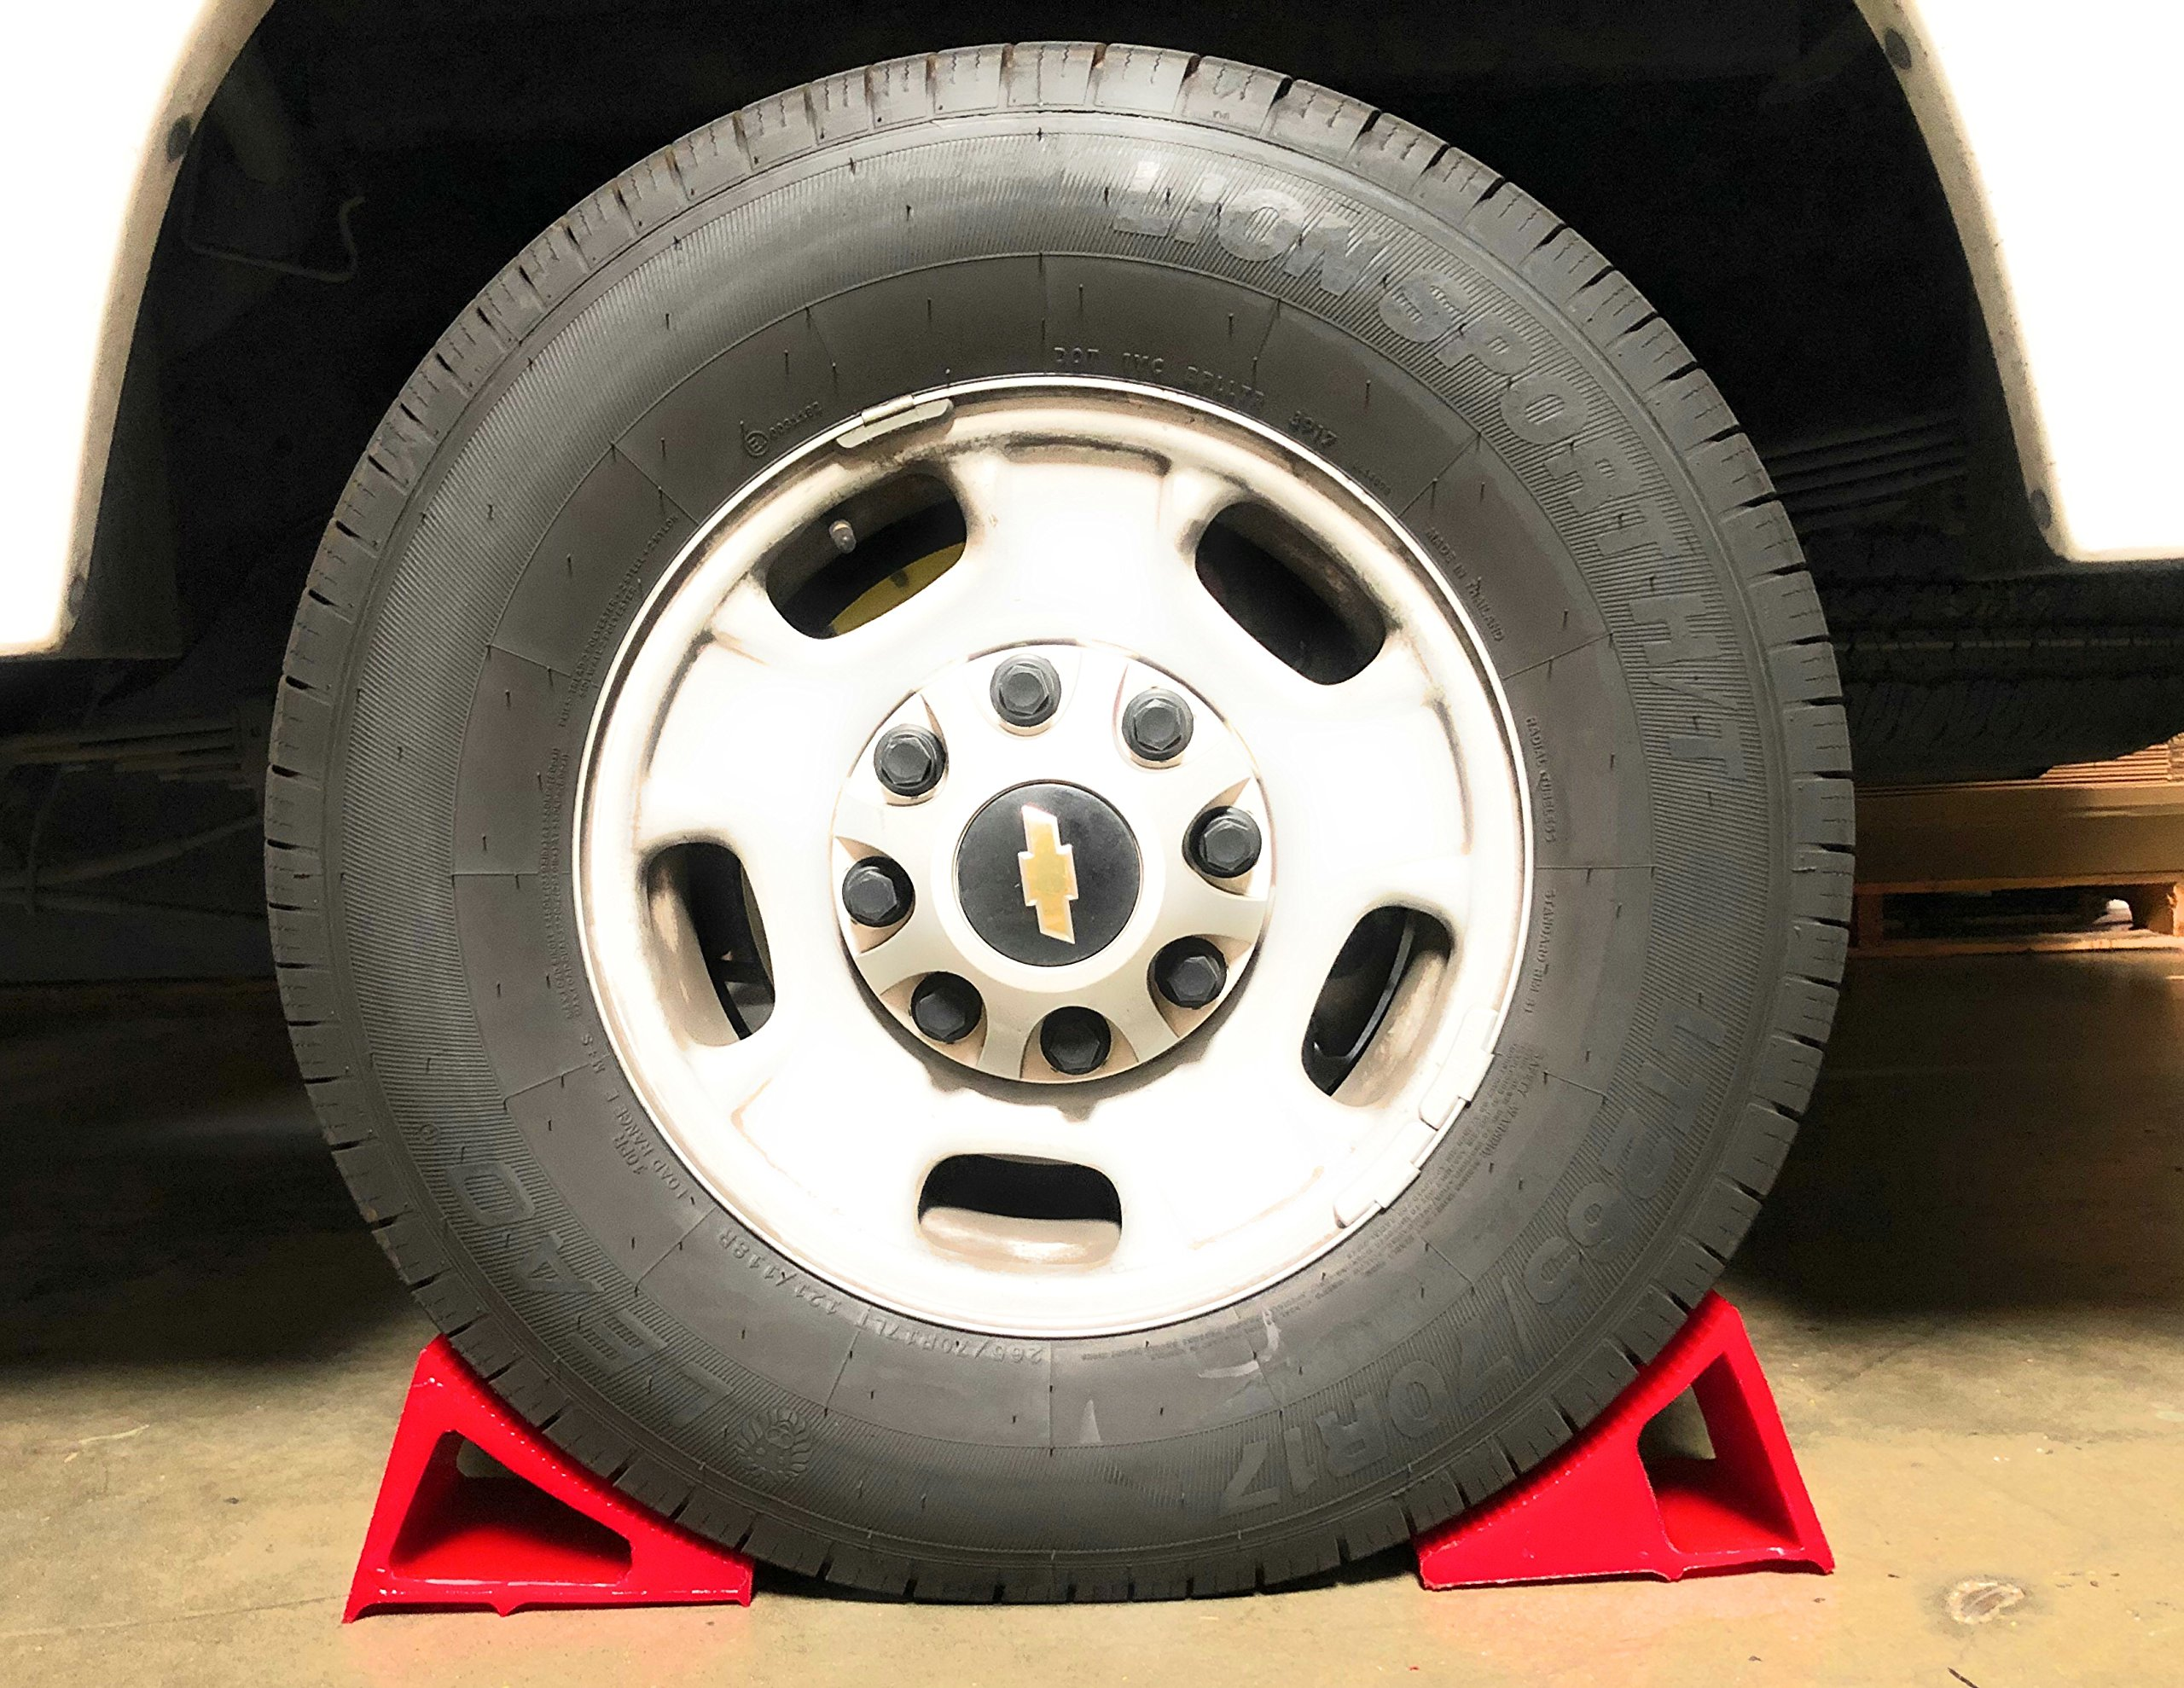 Tire & Wheel Chock - Ideal Camping Accessory for RV Motorhome, Trailer, Truck, Motorcycle & Car. Weatherproof, Outdoor Grade, Polyurethane Better Than Rubber or Plastic, 5 Year Warranty, 2 Pack Red by Elasco Products (Image #7)